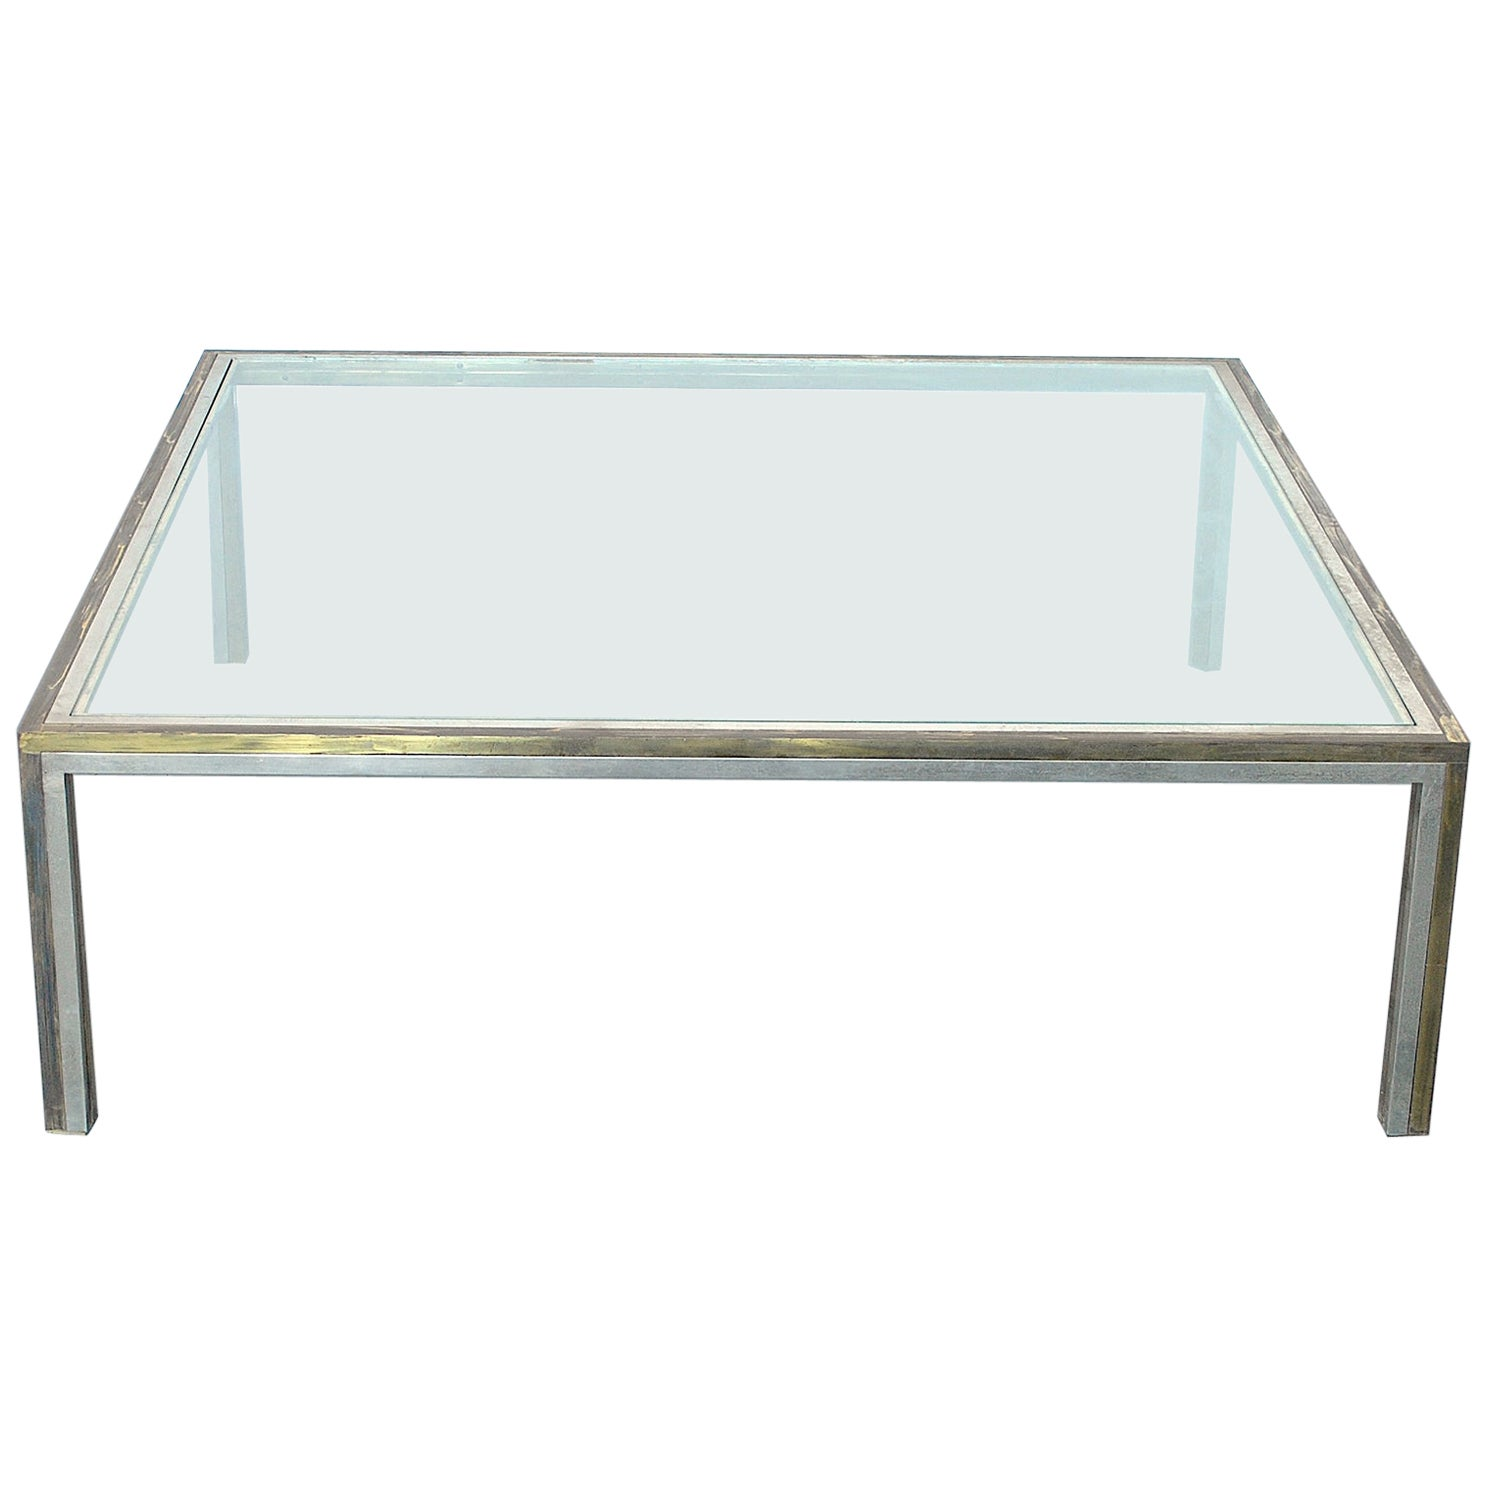 Romeo Rega Italian Midcentury Coffee Table